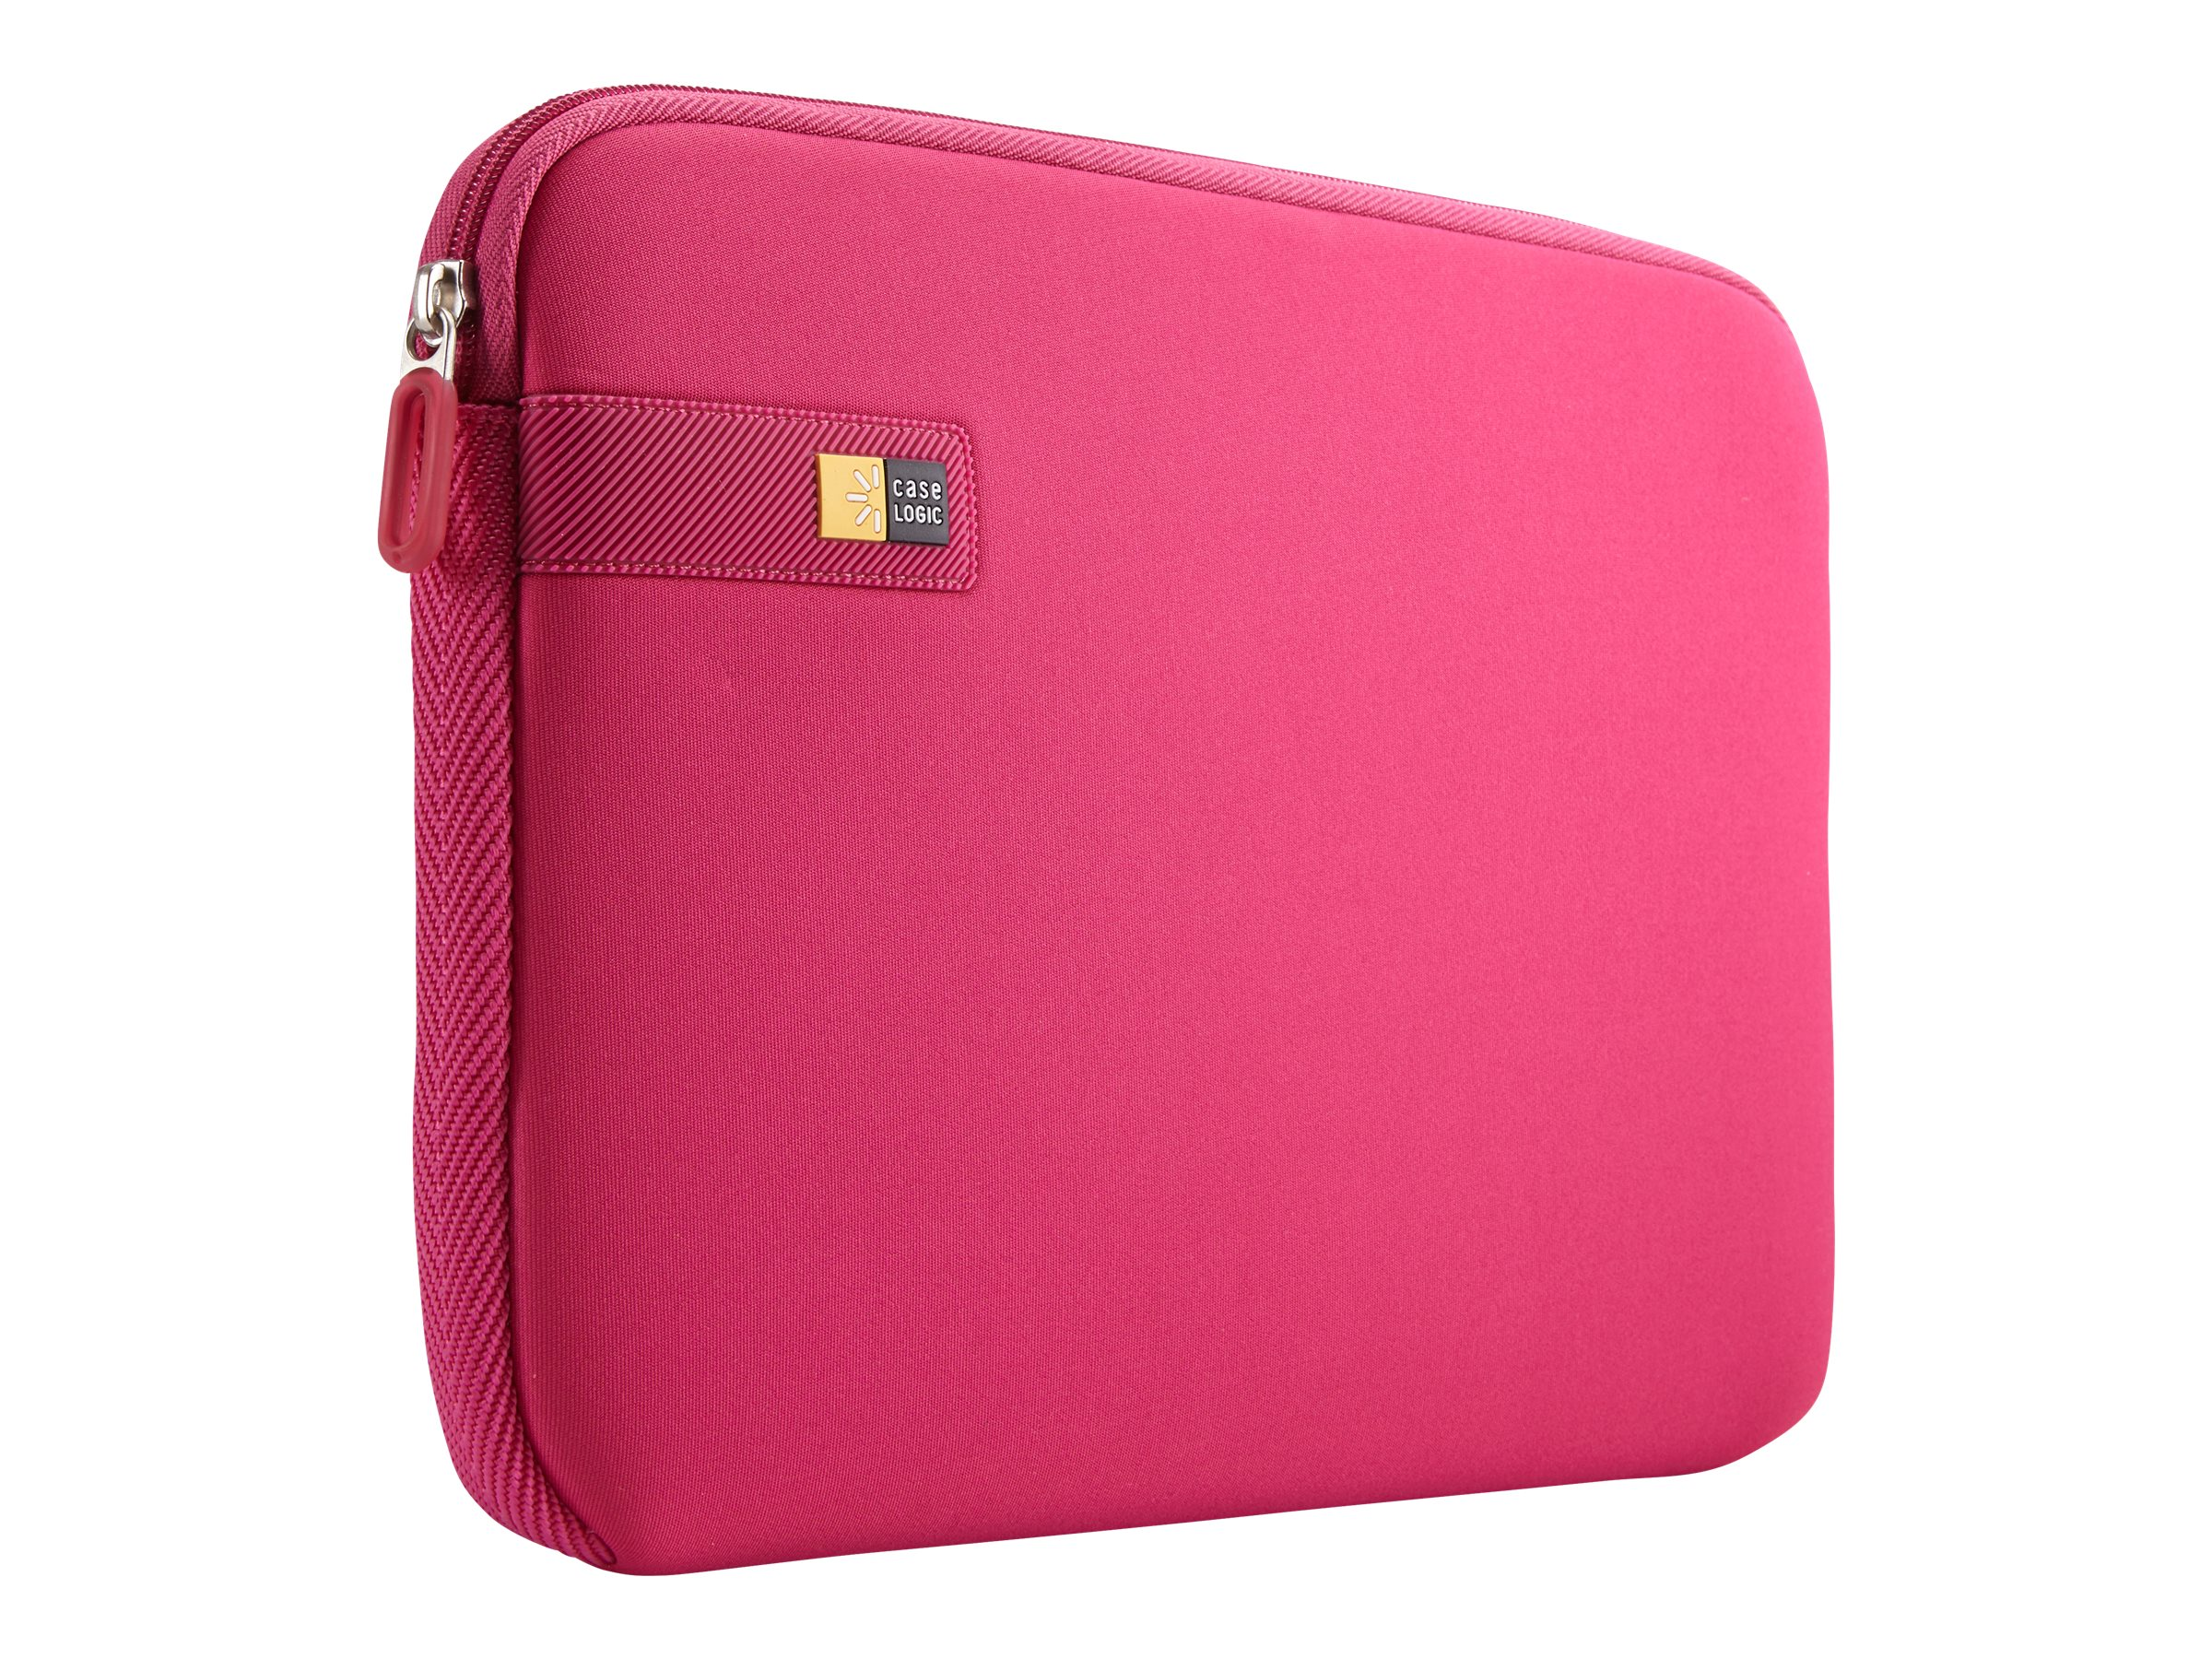 Case Logic Chromebooks Ultrabooks Sleeve 10-11.6, Pink, LAPS-111PINK, 17365356, Protective & Dust Covers